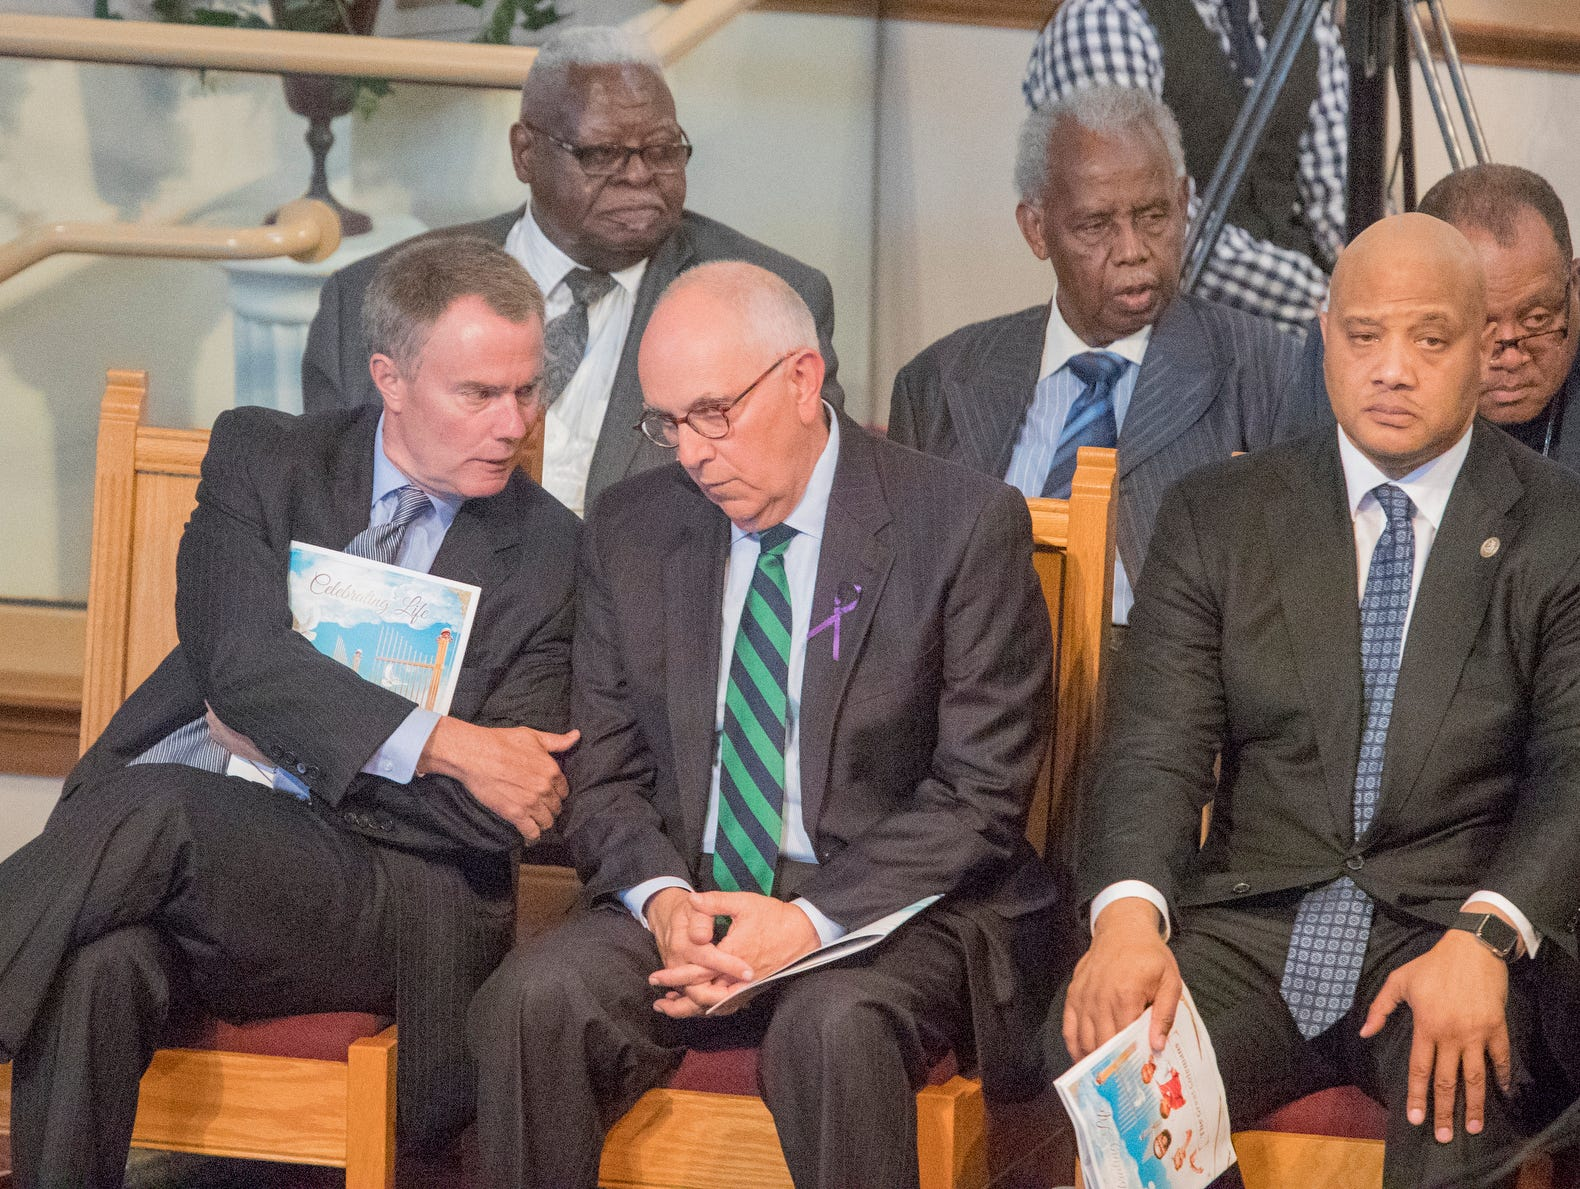 Mayor Joe Hogsett, Marion Co. Prosecutor Terry Curry and Congressman Andre Carson attended the homegoing service of Glenn Coleman, 40, Reece, 9, Evan, 7, and Arya, 1, at Grace Apostolic Church on Friday, July 27, 2018. Seventeen people were killed in the duck boat accident in Branson, Missouri, nine of them were members of the Coleman family.